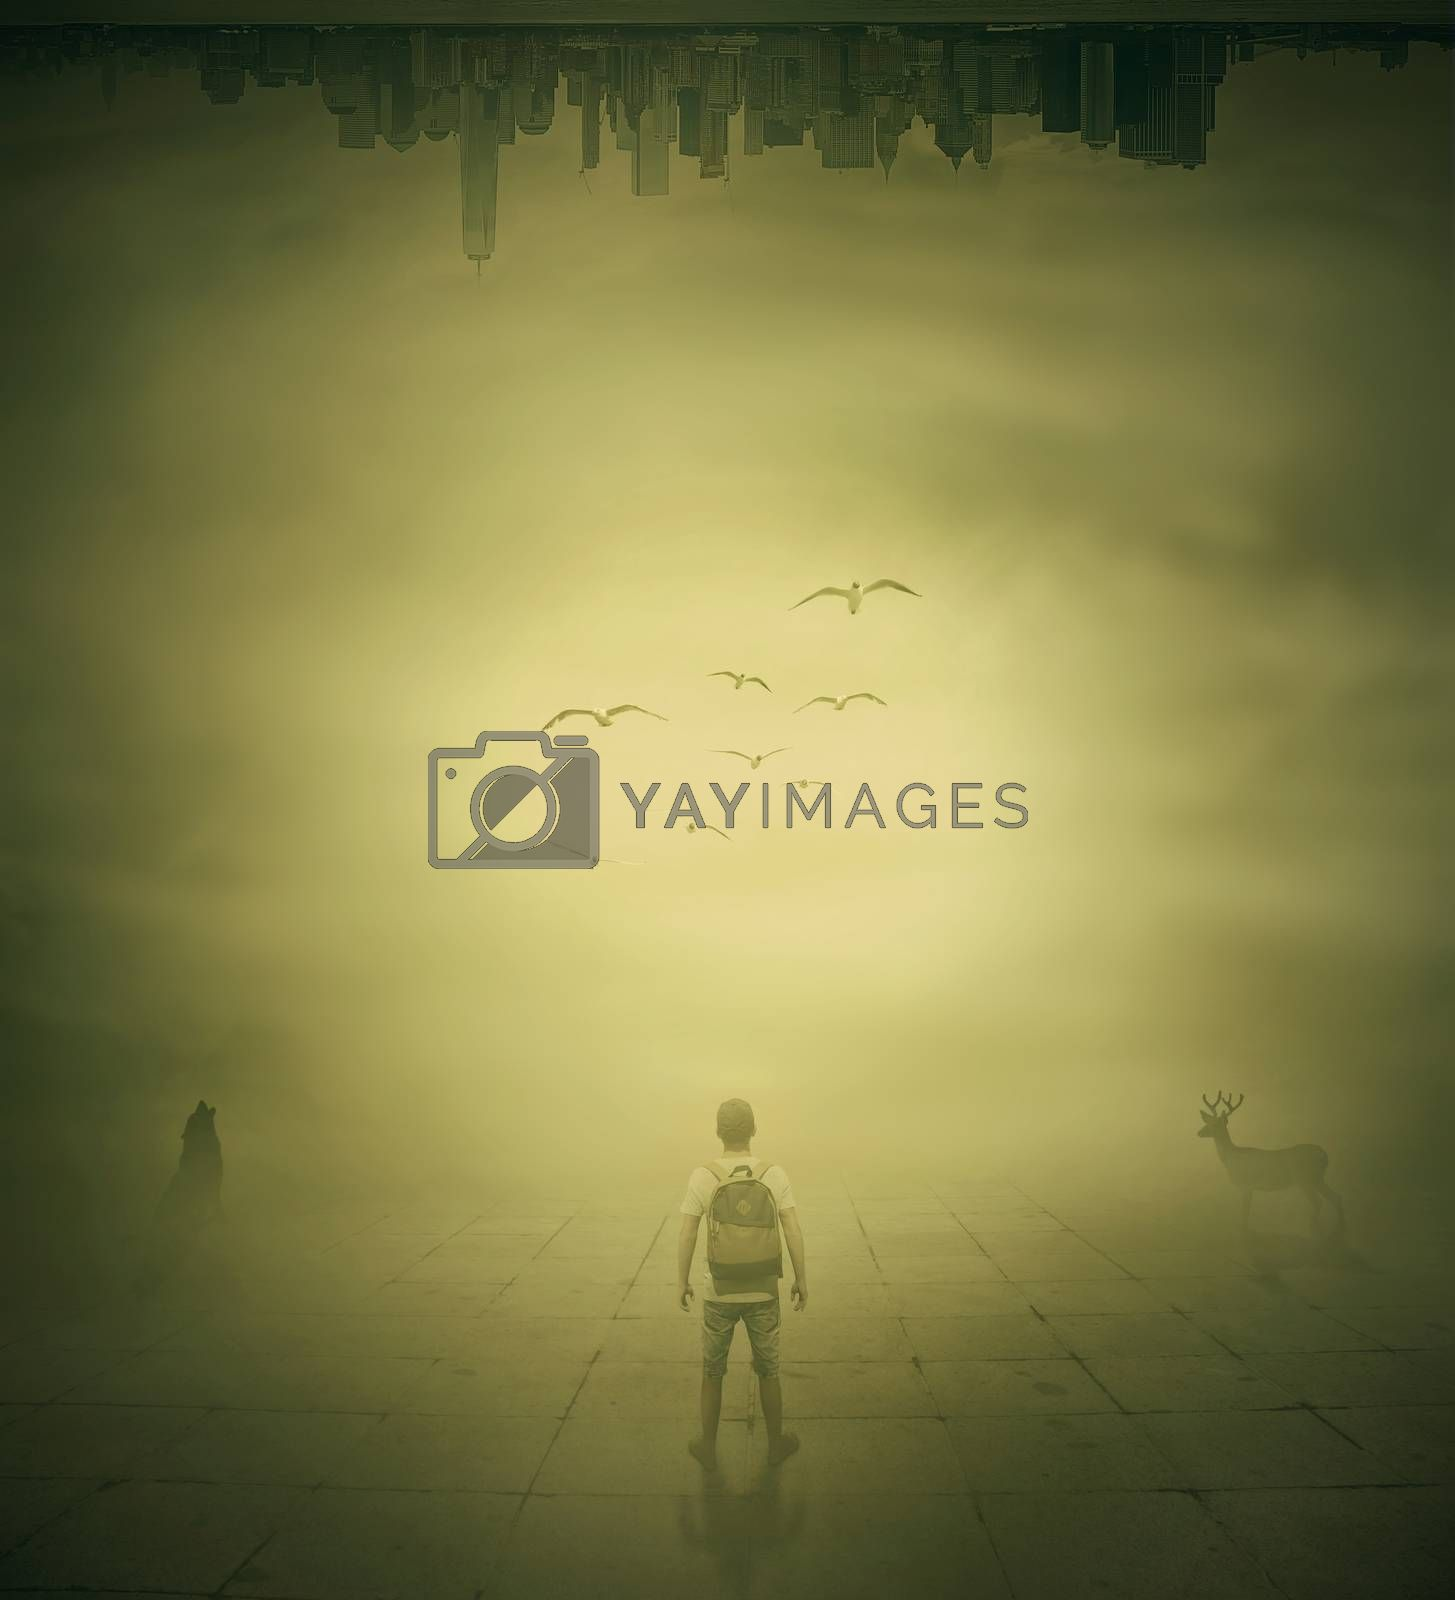 Surrealistic image with a man standing in a foggy street below a city buidings choosing the correct way